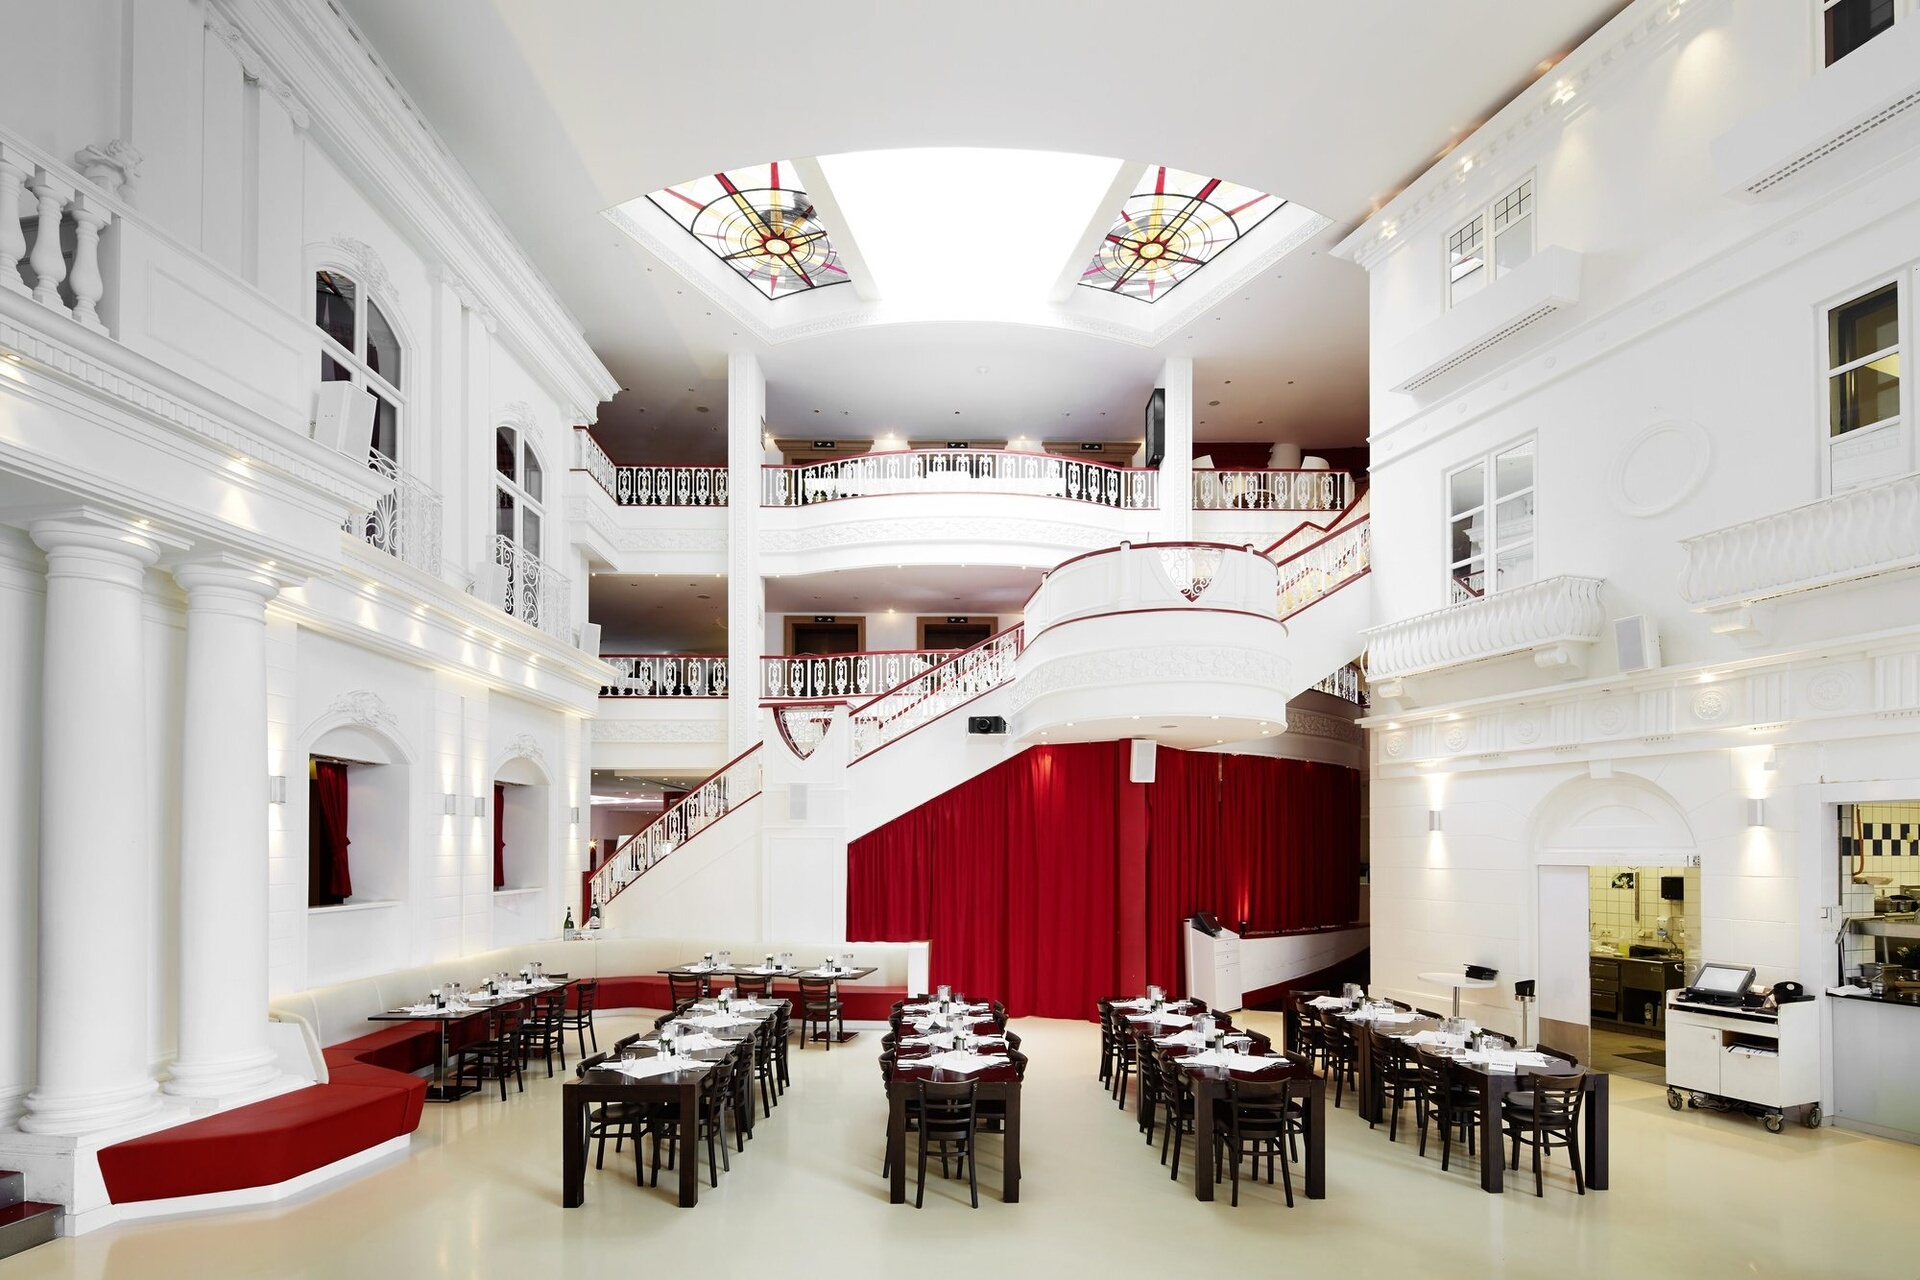 A large white room that is full of tables and chairs with a big staircase in the background.